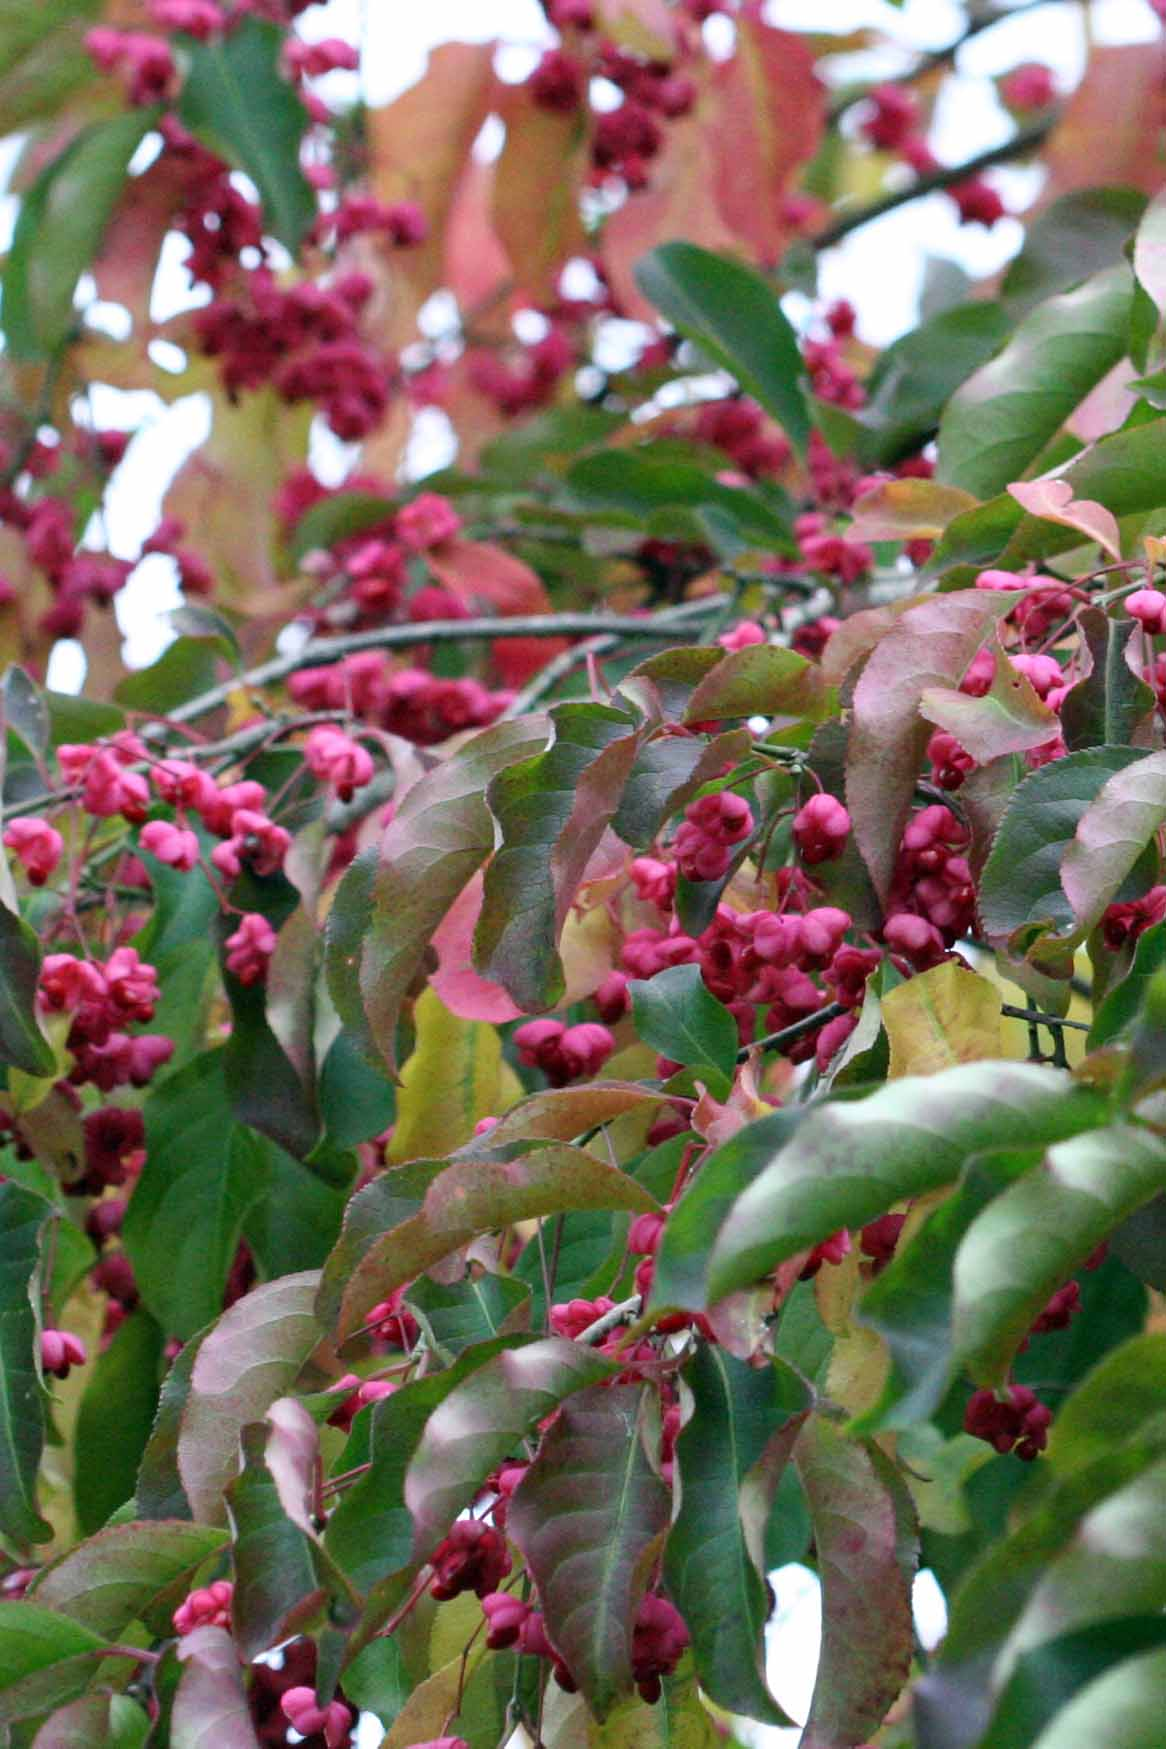 A close up vertical image of Euonymus europaeus with pink berries and greenish-pink leaves in the fall garden.